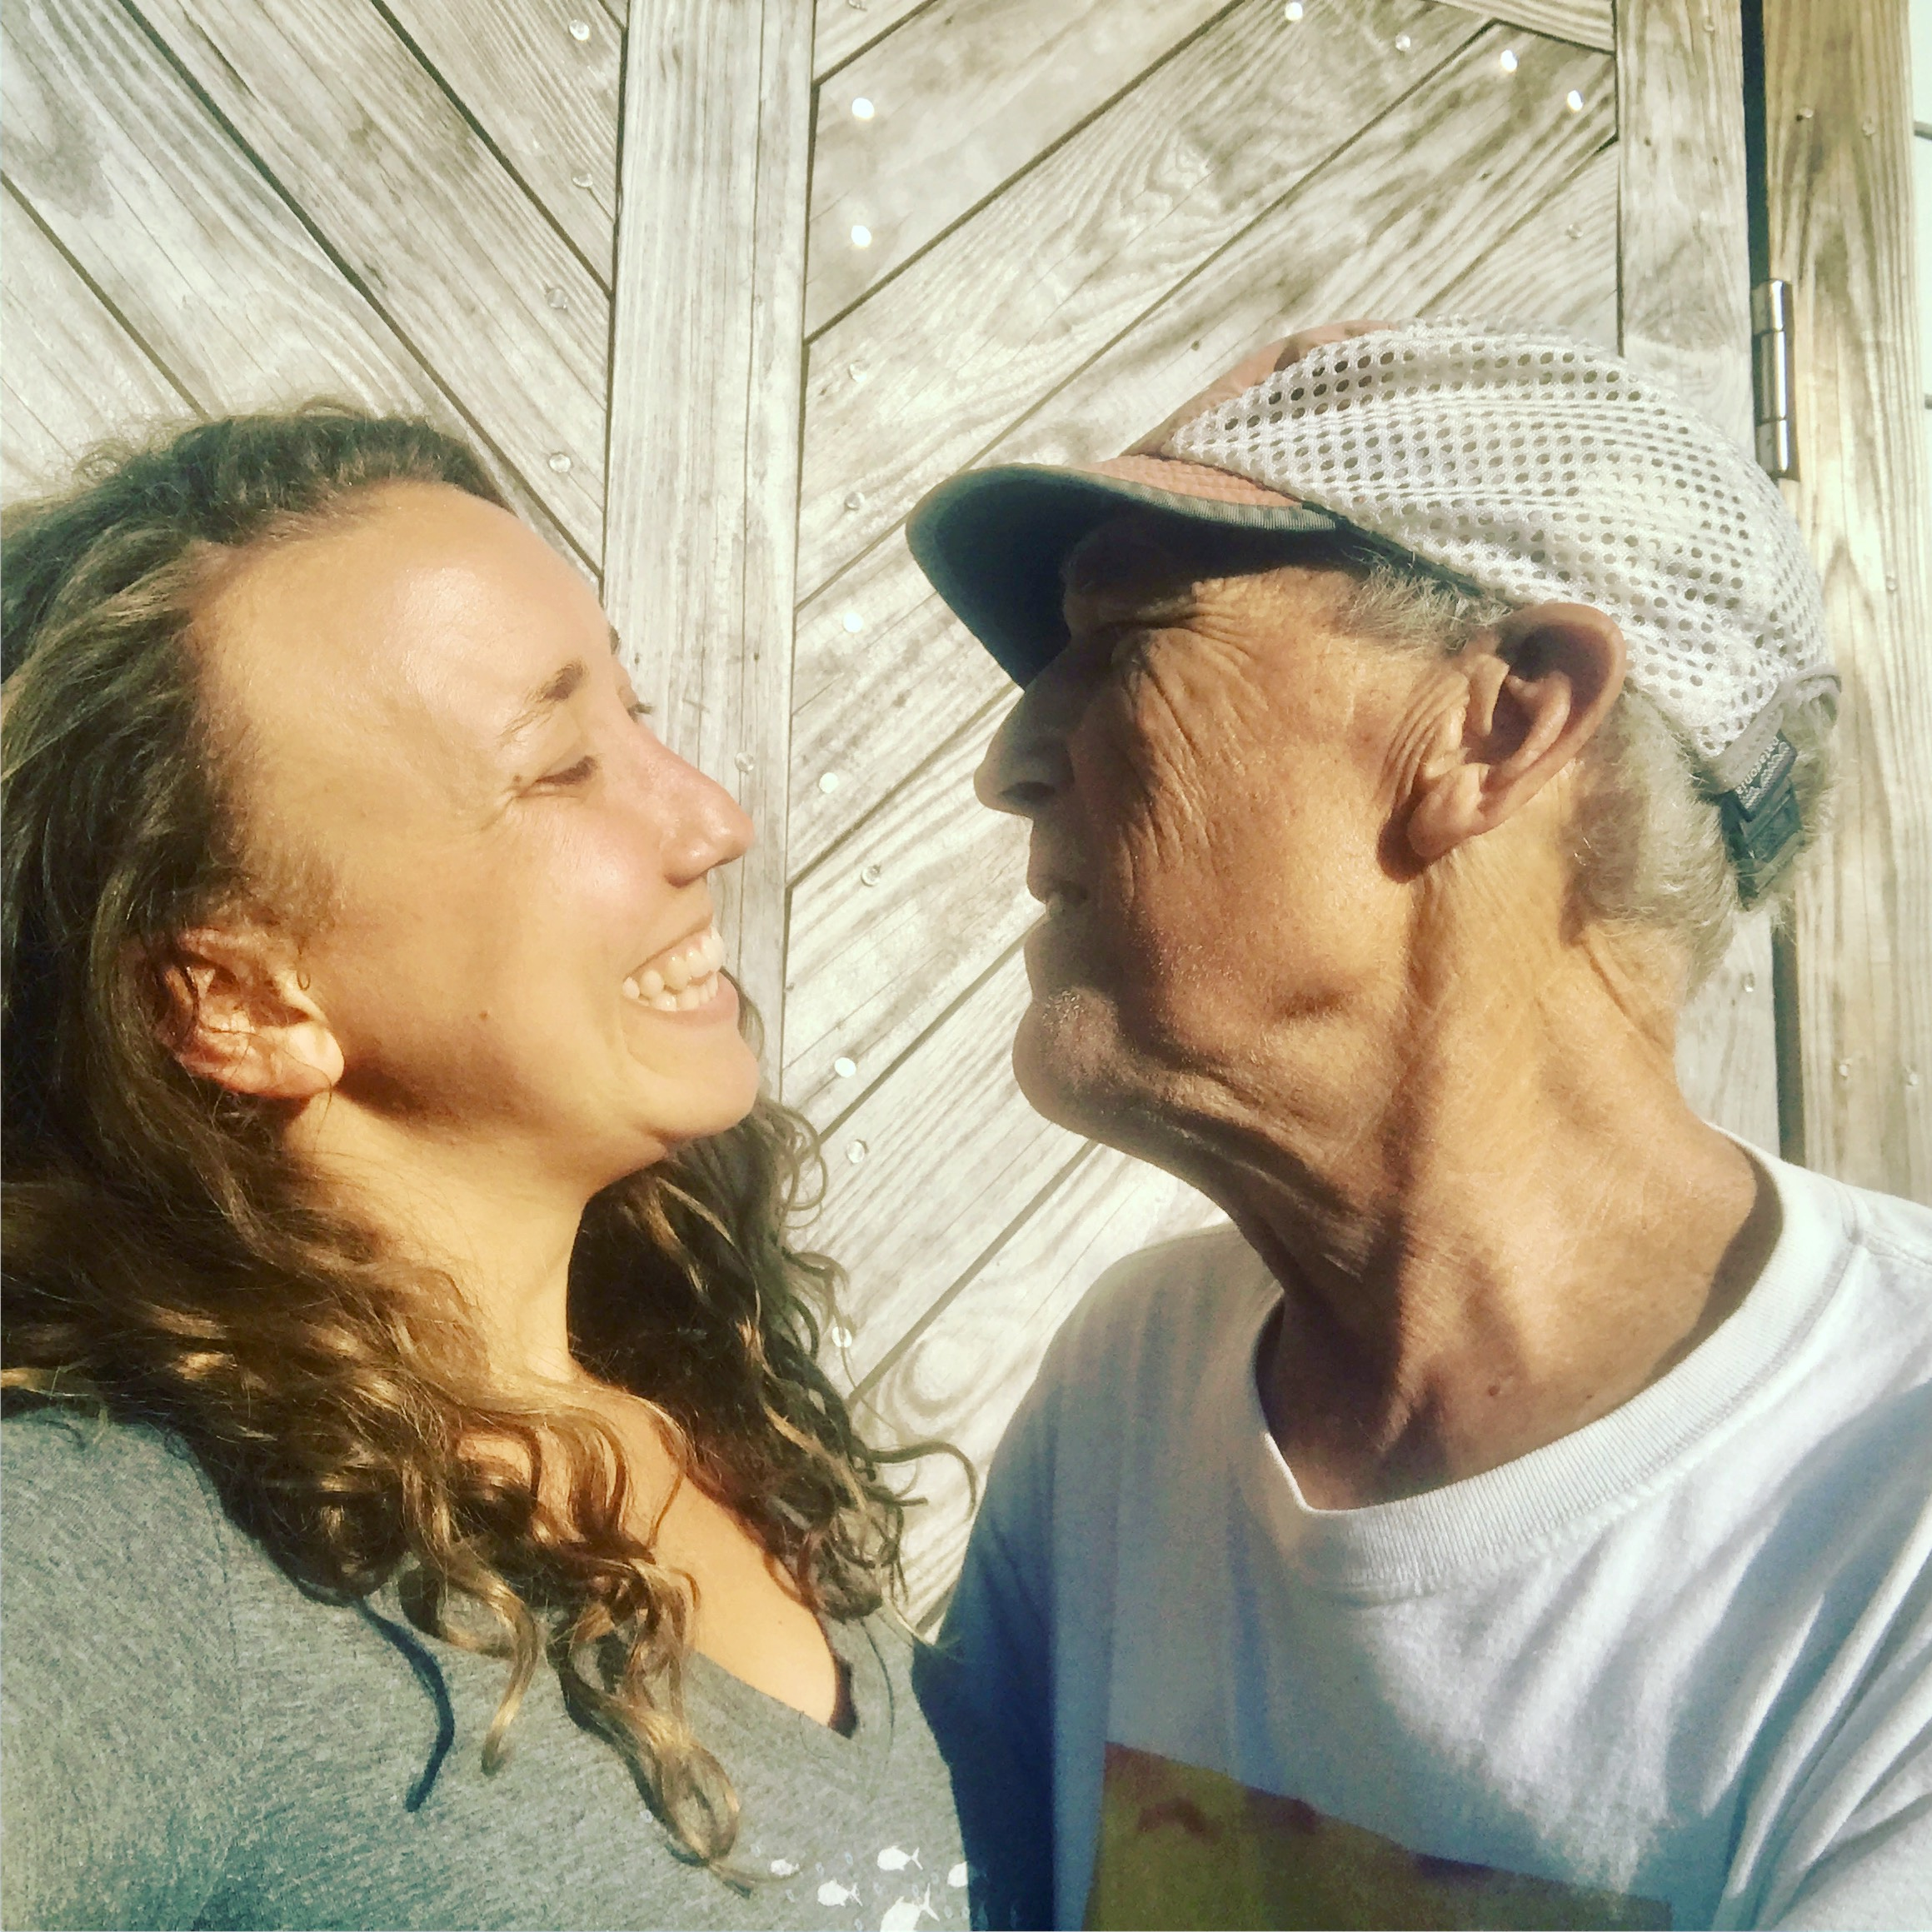 My dad and I soaking up spring sunlight and smiles.